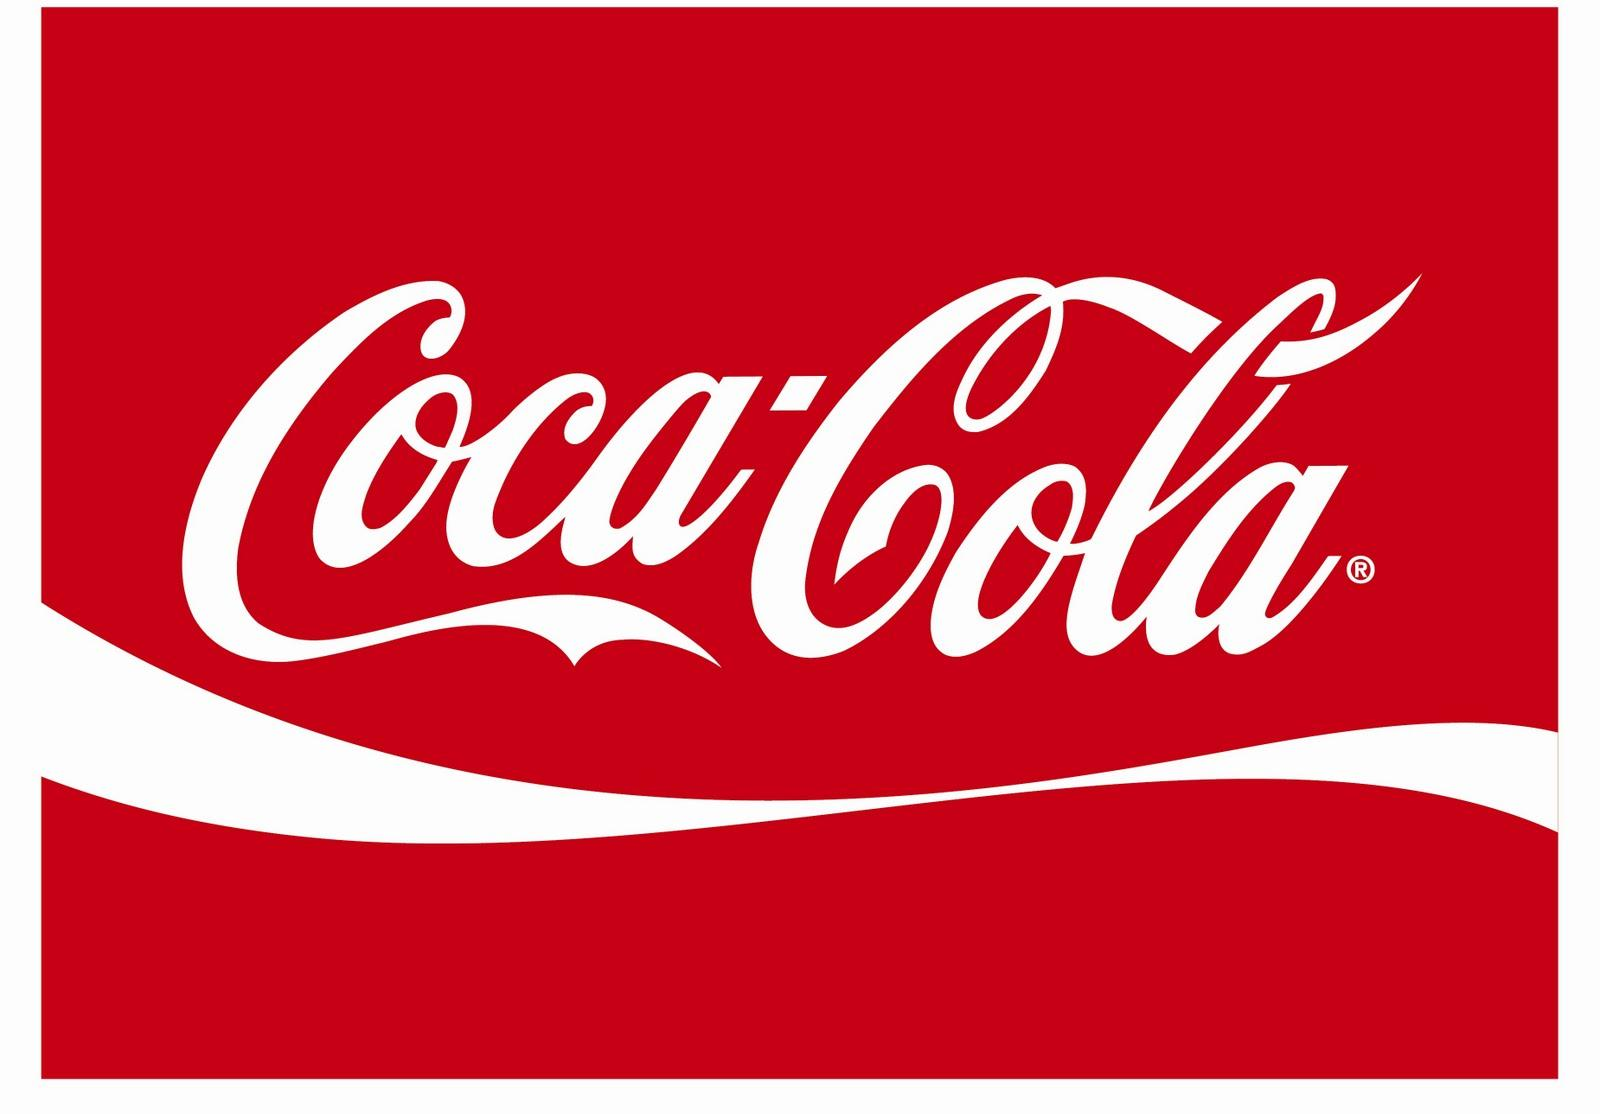 Coca-Cola Scholarship - A $20,000 scholarship awarded over the course of 4 years. The Coca-Cola Scholarship is focused on finding a well-rounded student with good test scorces, community service, and involed on campus.